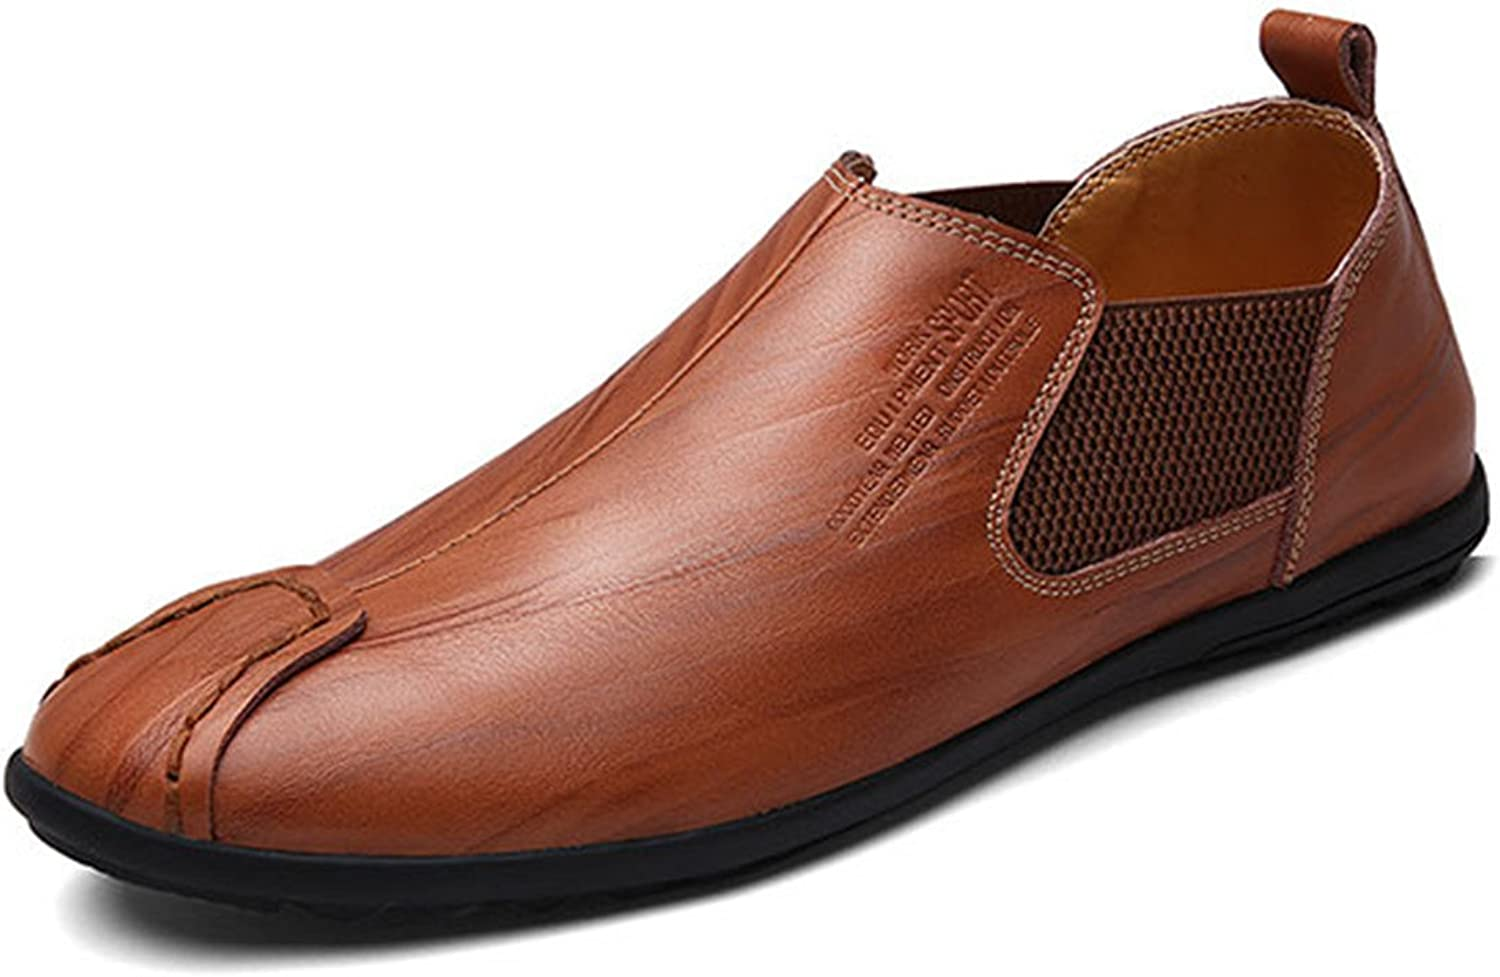 Gracosy Men's Leather Loafers, British Style Premium Classic Oxfords shoes Flat Breathable shoes